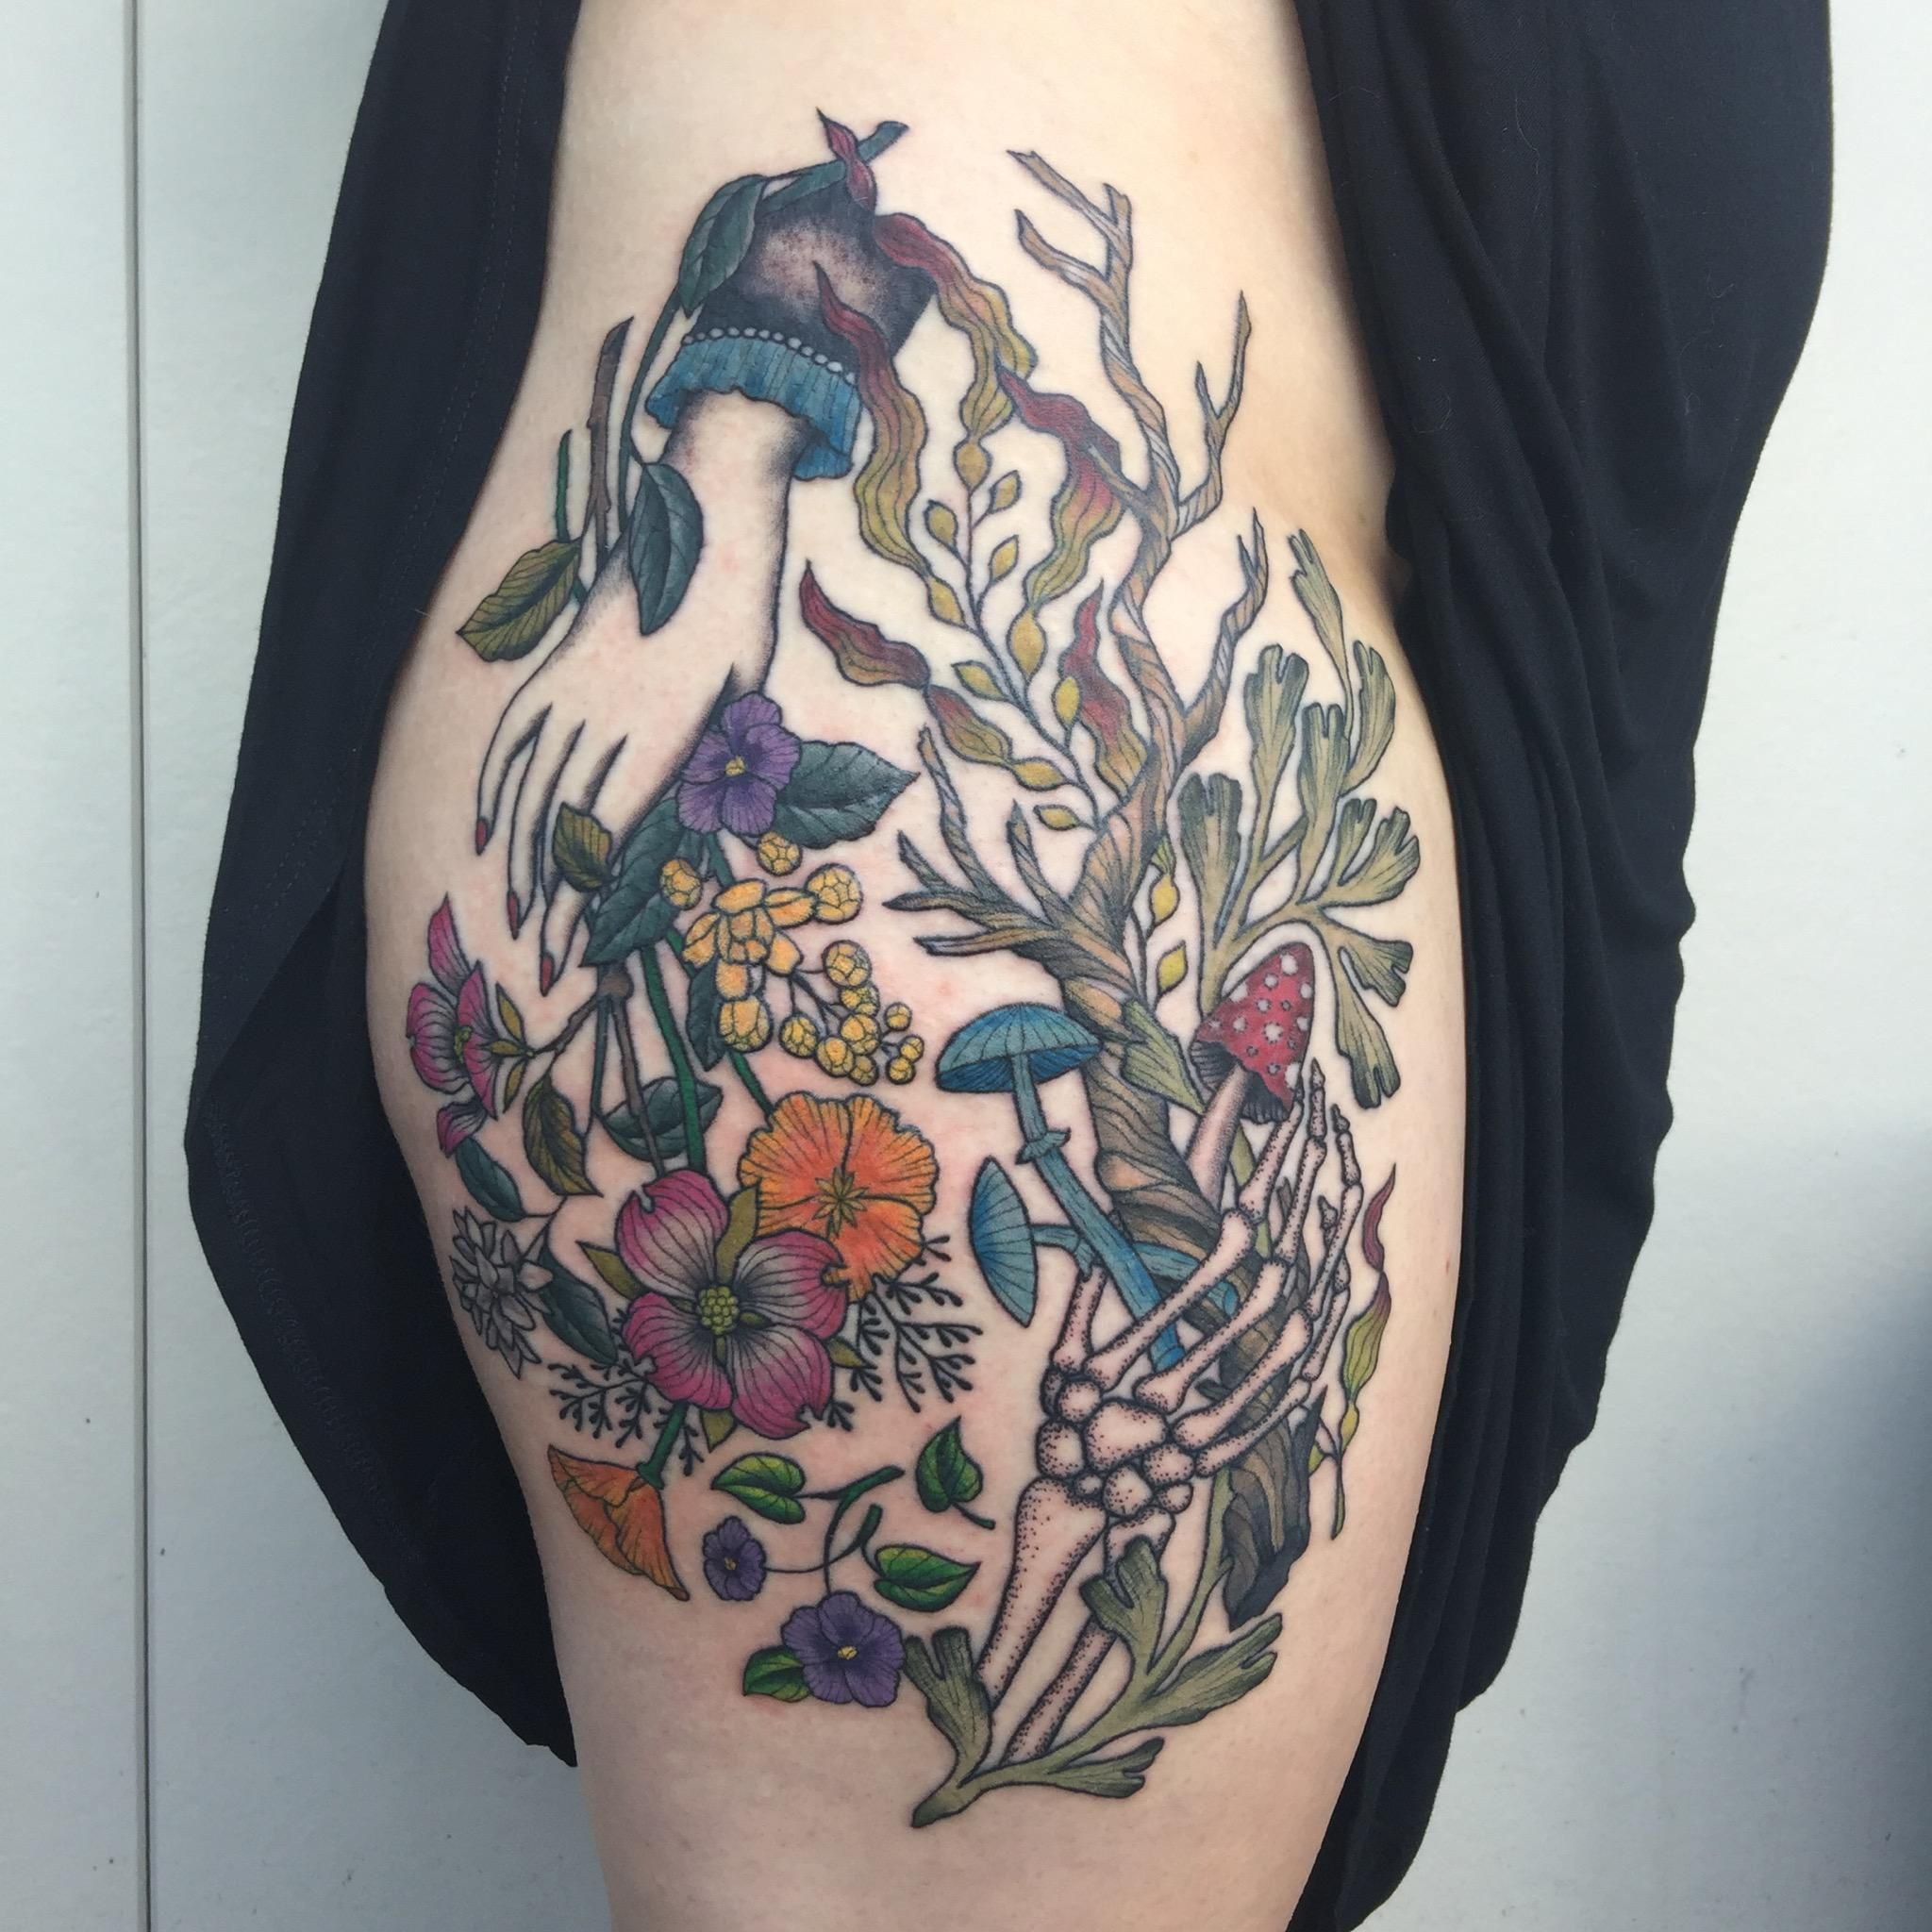 My First Tattoo By Laura Graham At Grizzly Tattoo In Portland Tattoo Tattoos First Tattoo R Tattoo